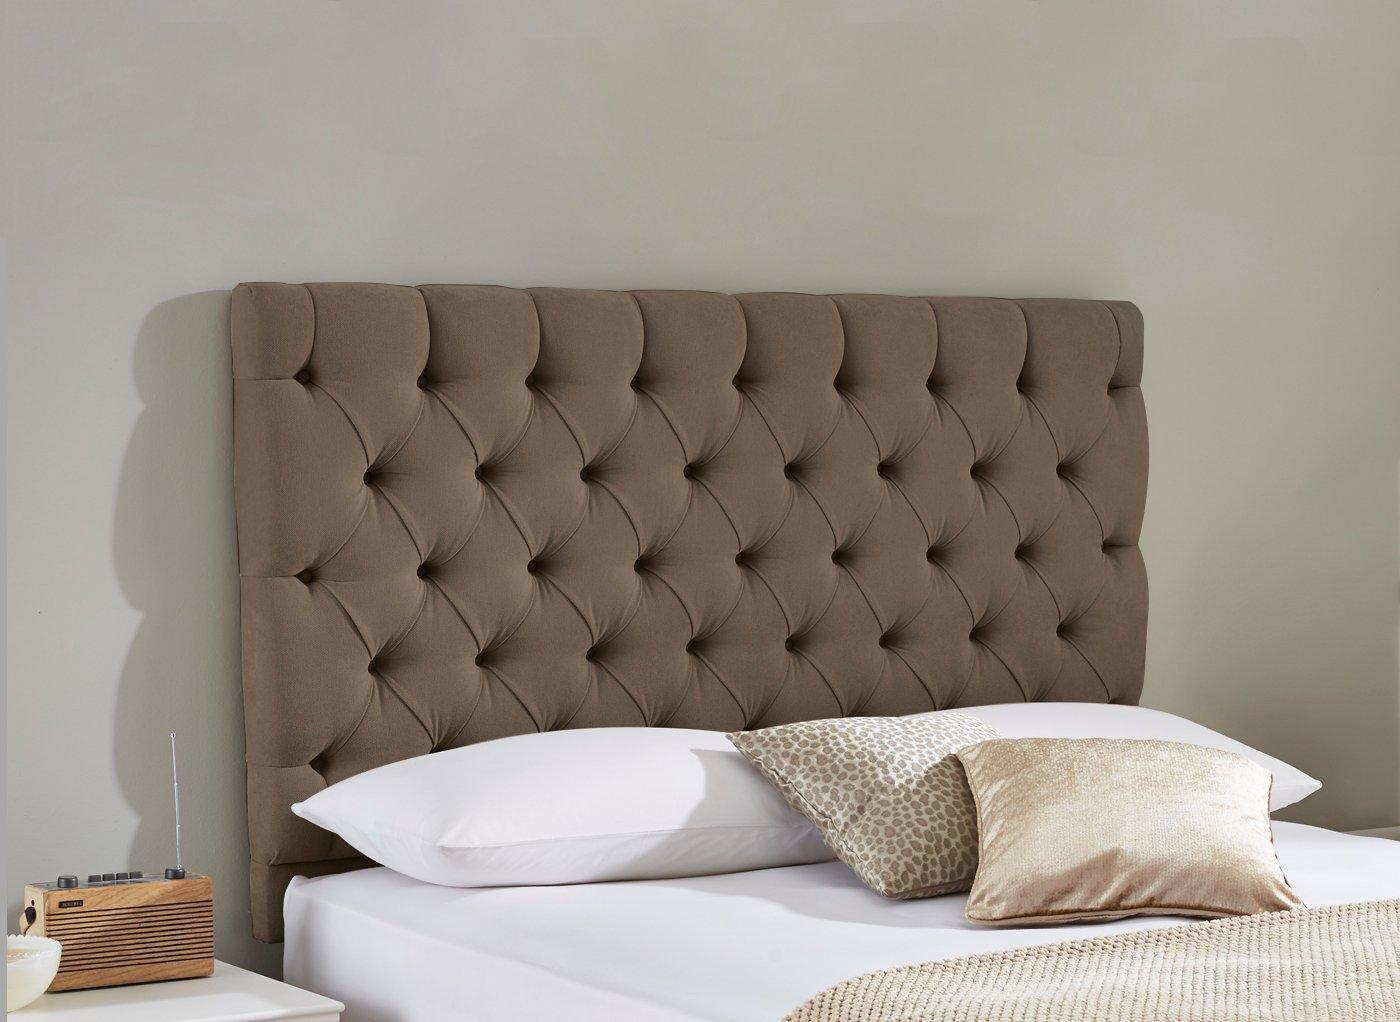 Harrogate Headboard 4'6 Double BROWN